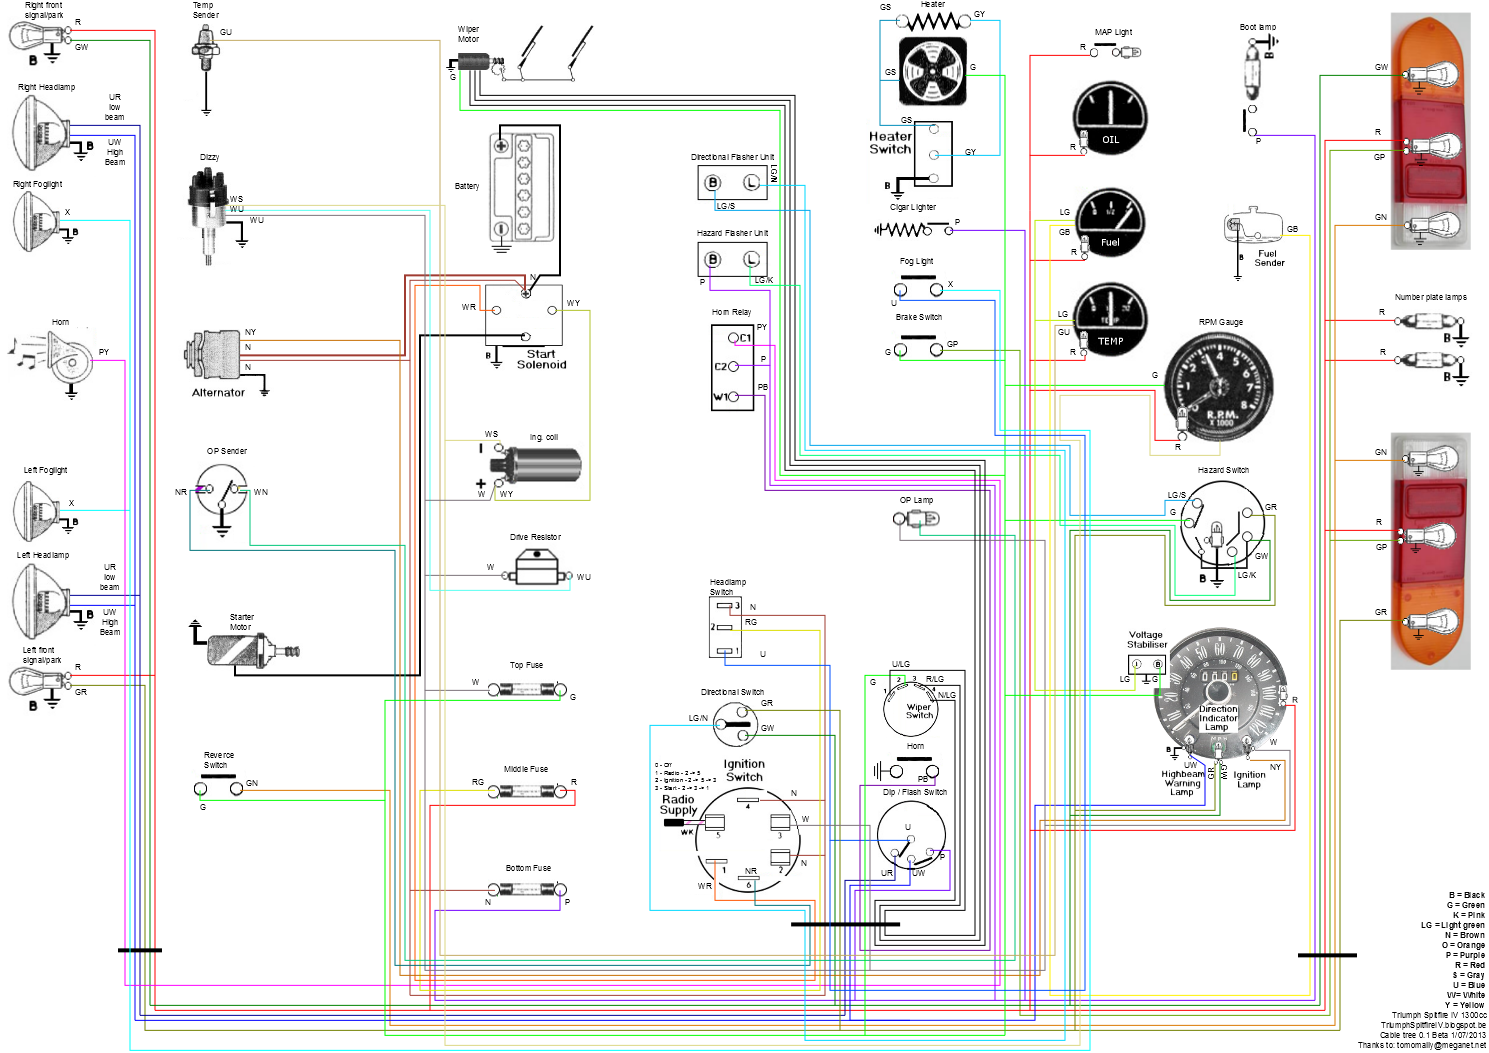 spitfire iv wiring diagram mk4 wiring diagram mk4 tdi wiring diagram \u2022 wiring diagrams j  at mifinder.co